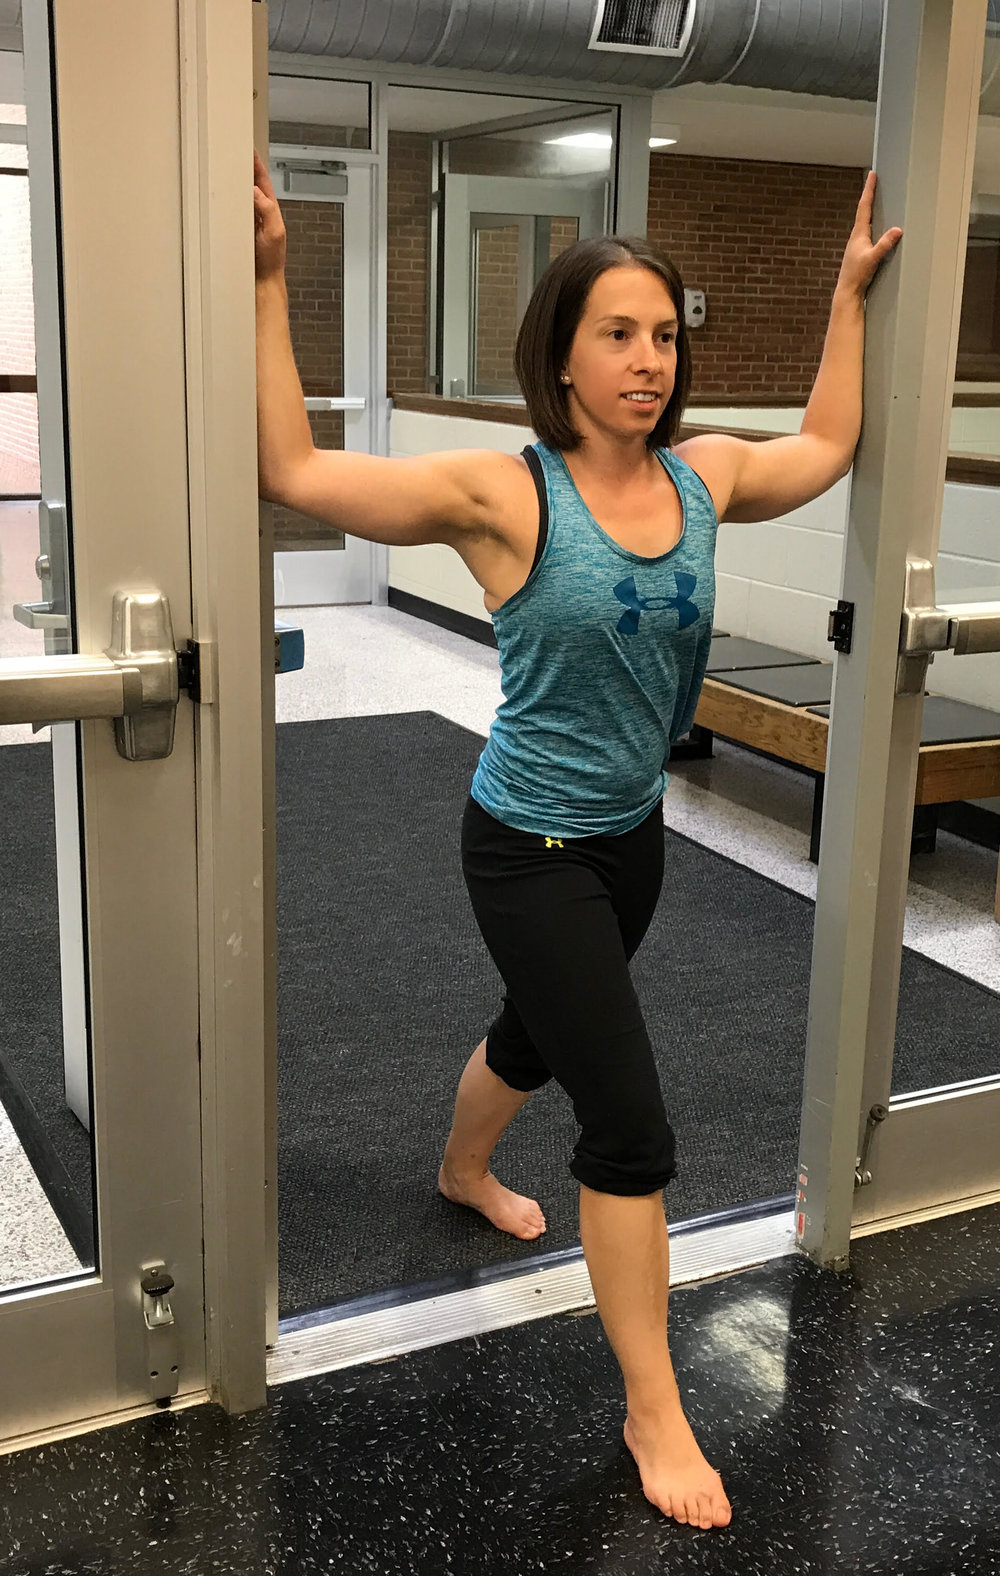 "Starting position:  Standing in a doorway, place the arms at 90 degrees of shoulder abd with about 90 degrees of elbow flexion.  Place one foot forward (for support).  Head and chest neutral with the abdominal muscles engaged (to protect the back).  Then shift the weight forward as if ""stepping through the door.""  You should feel a stretch across the front of the chest and arms."